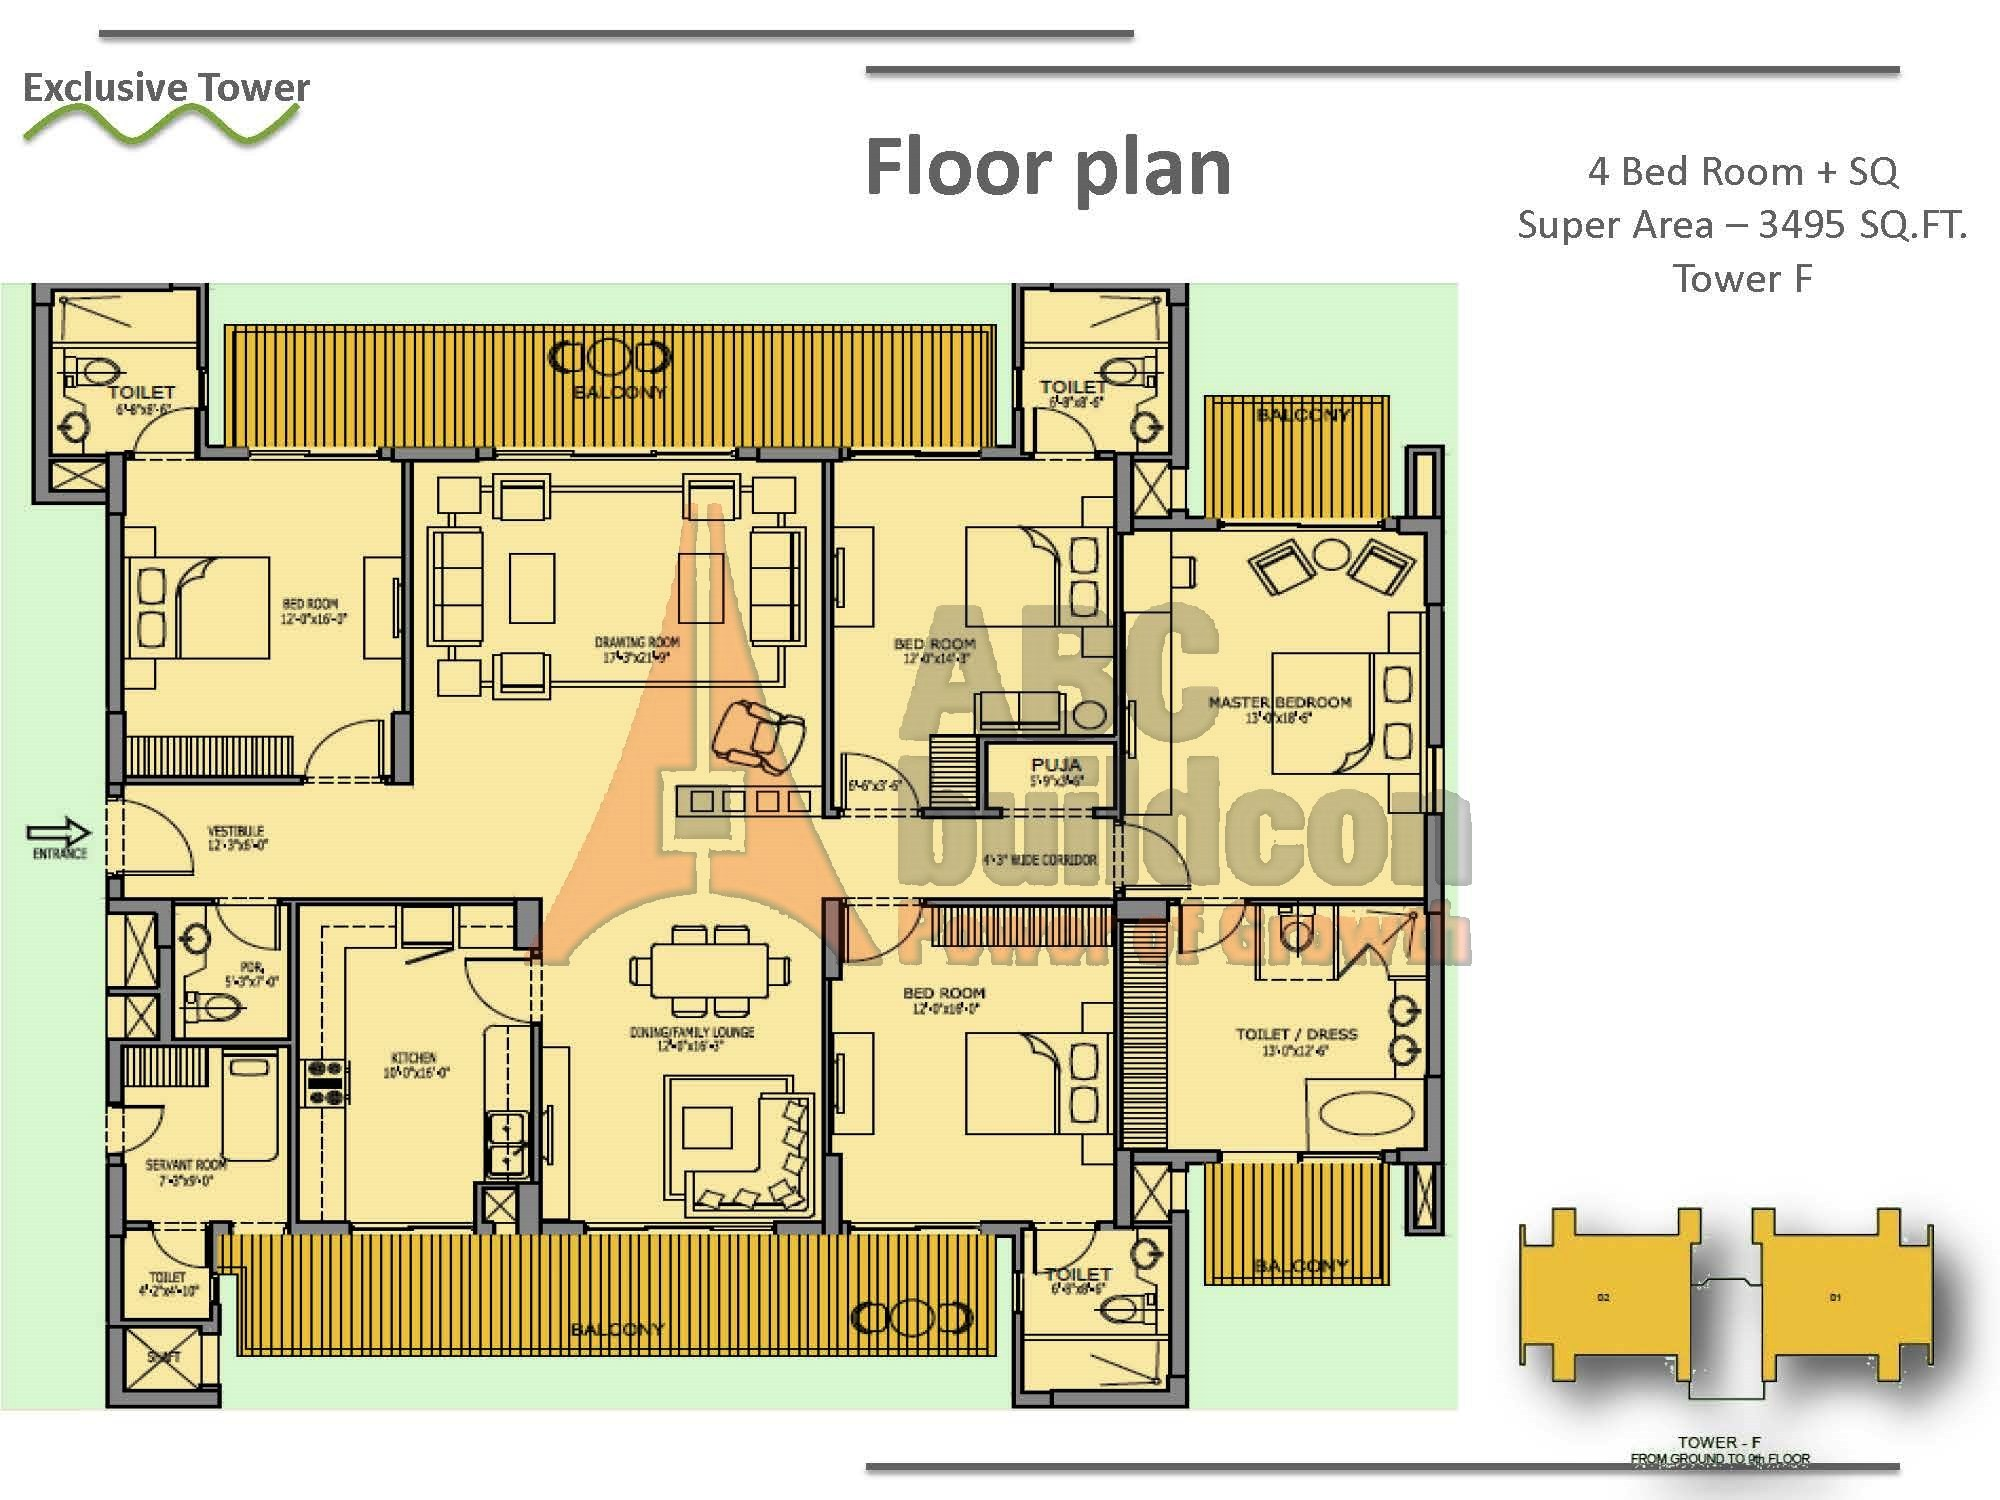 Bestech park view spa floor plan for Salon layout plans